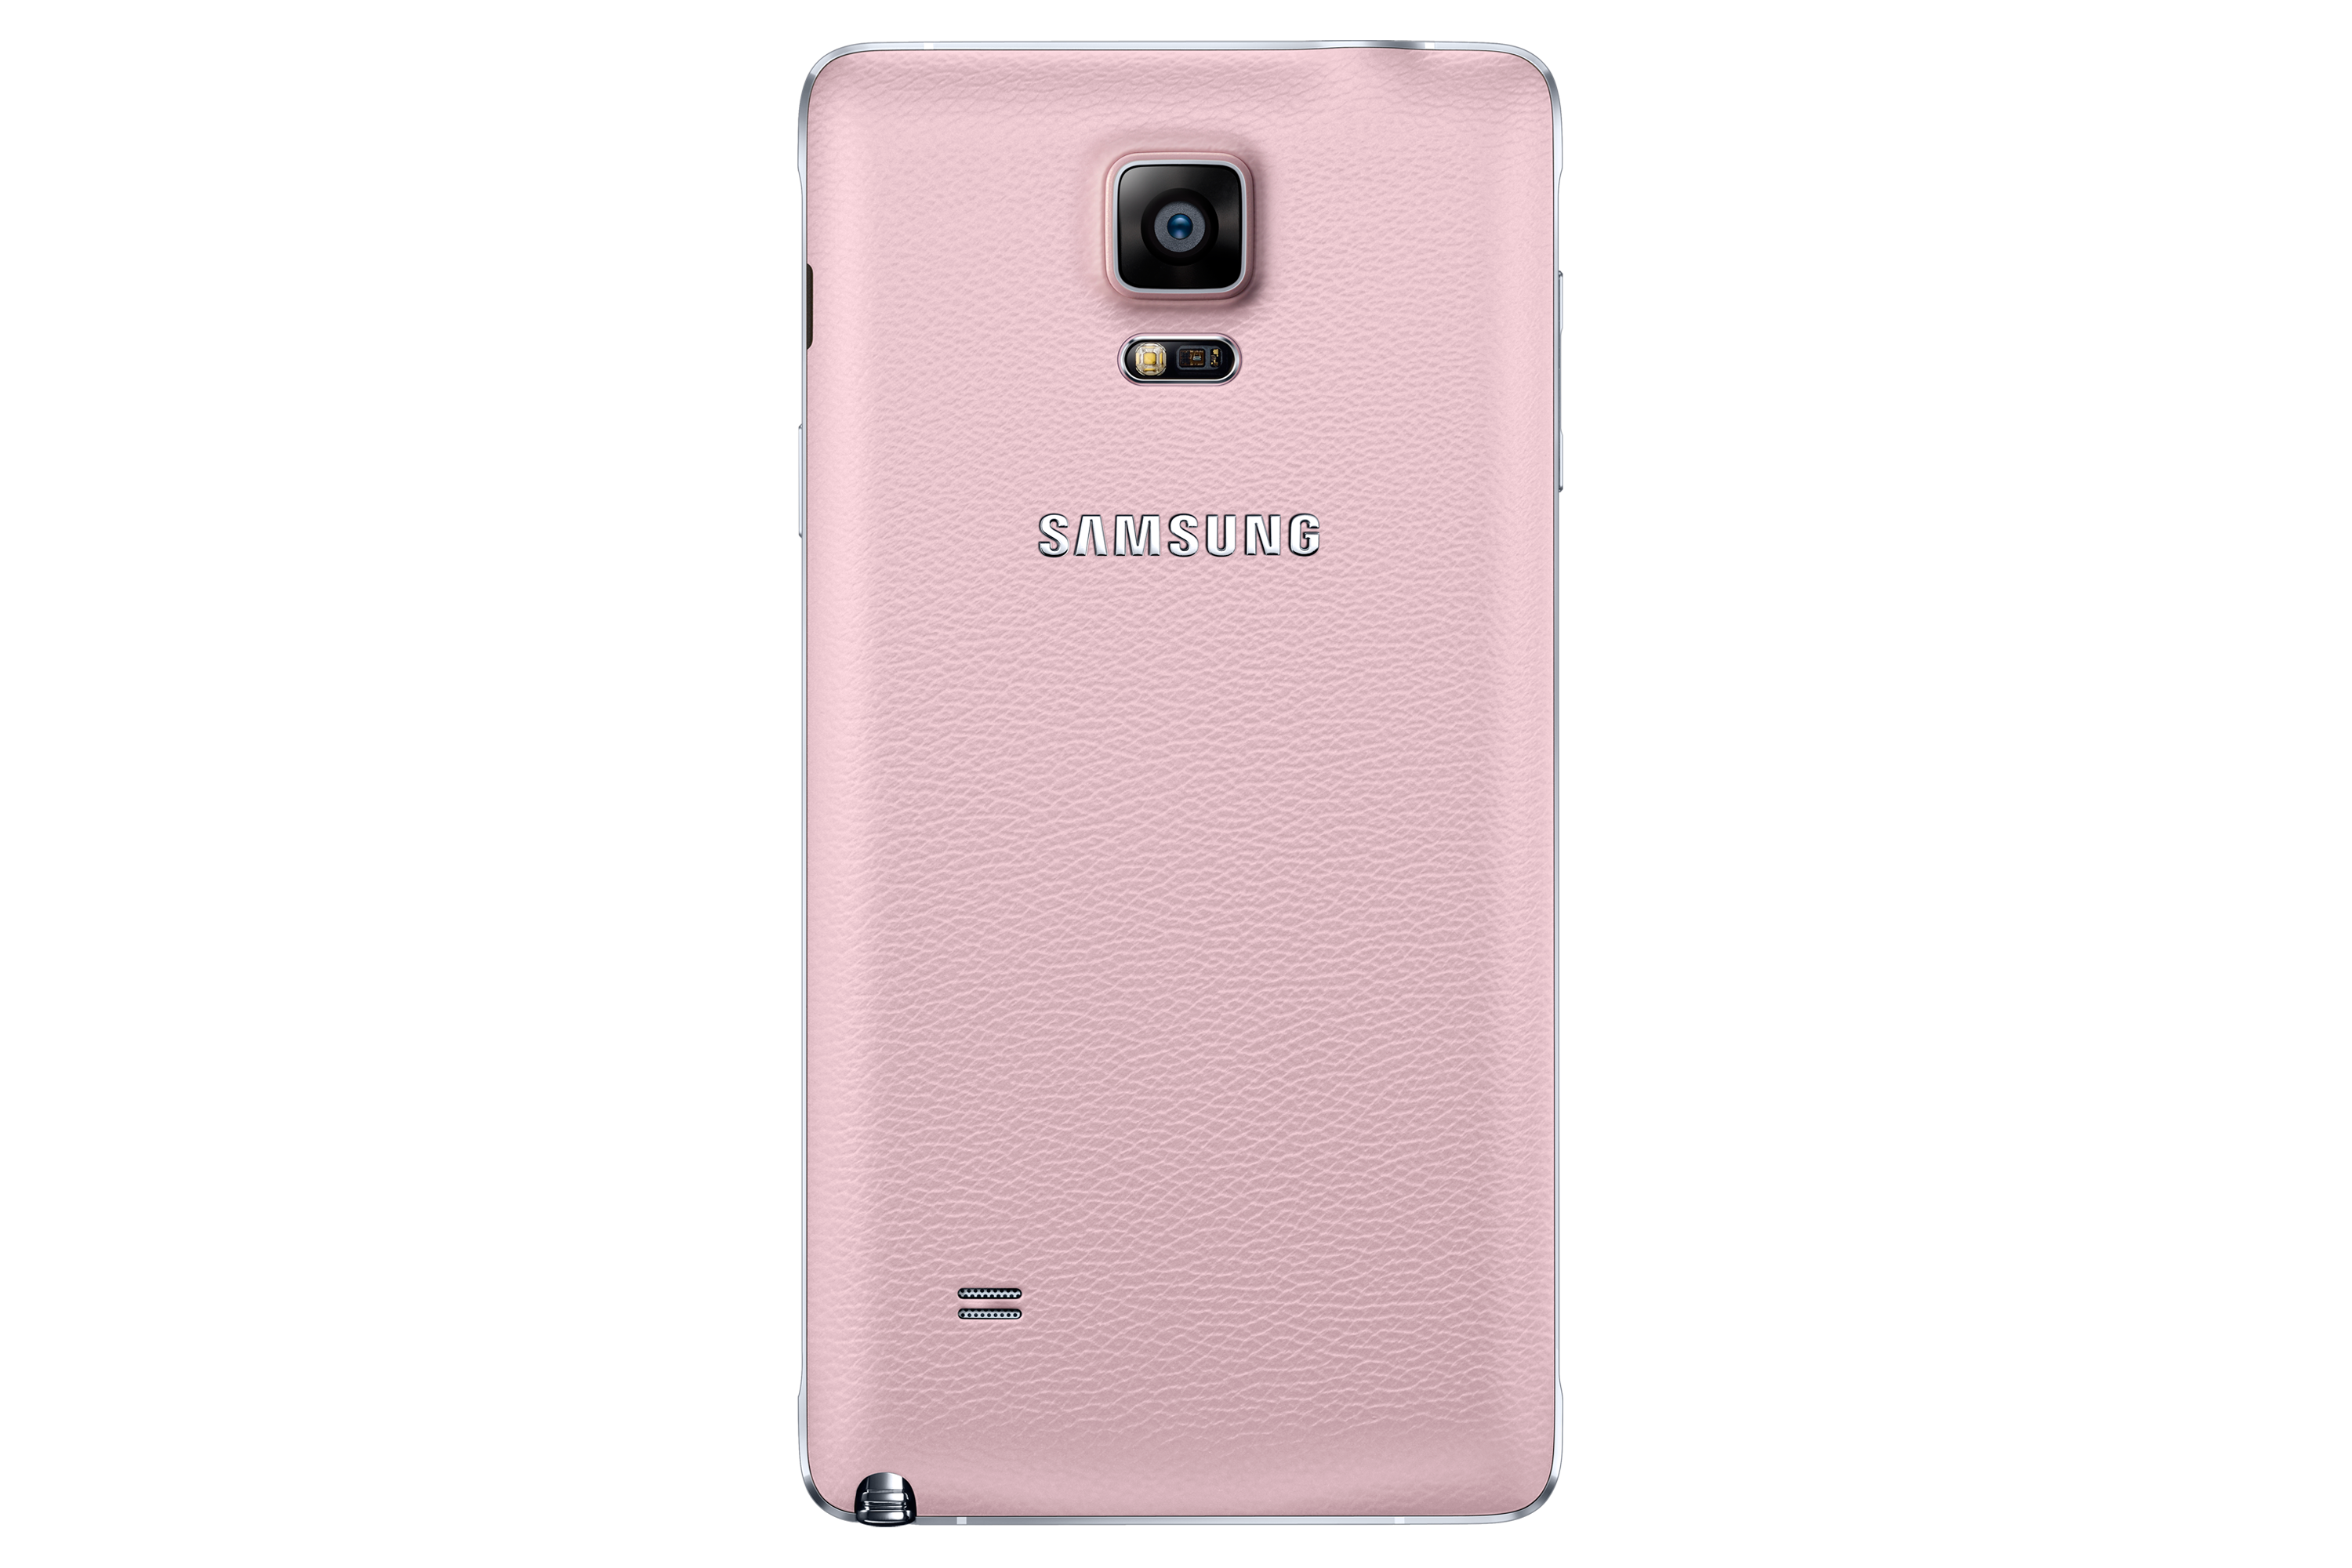 Back Cover - Galaxy Note 4